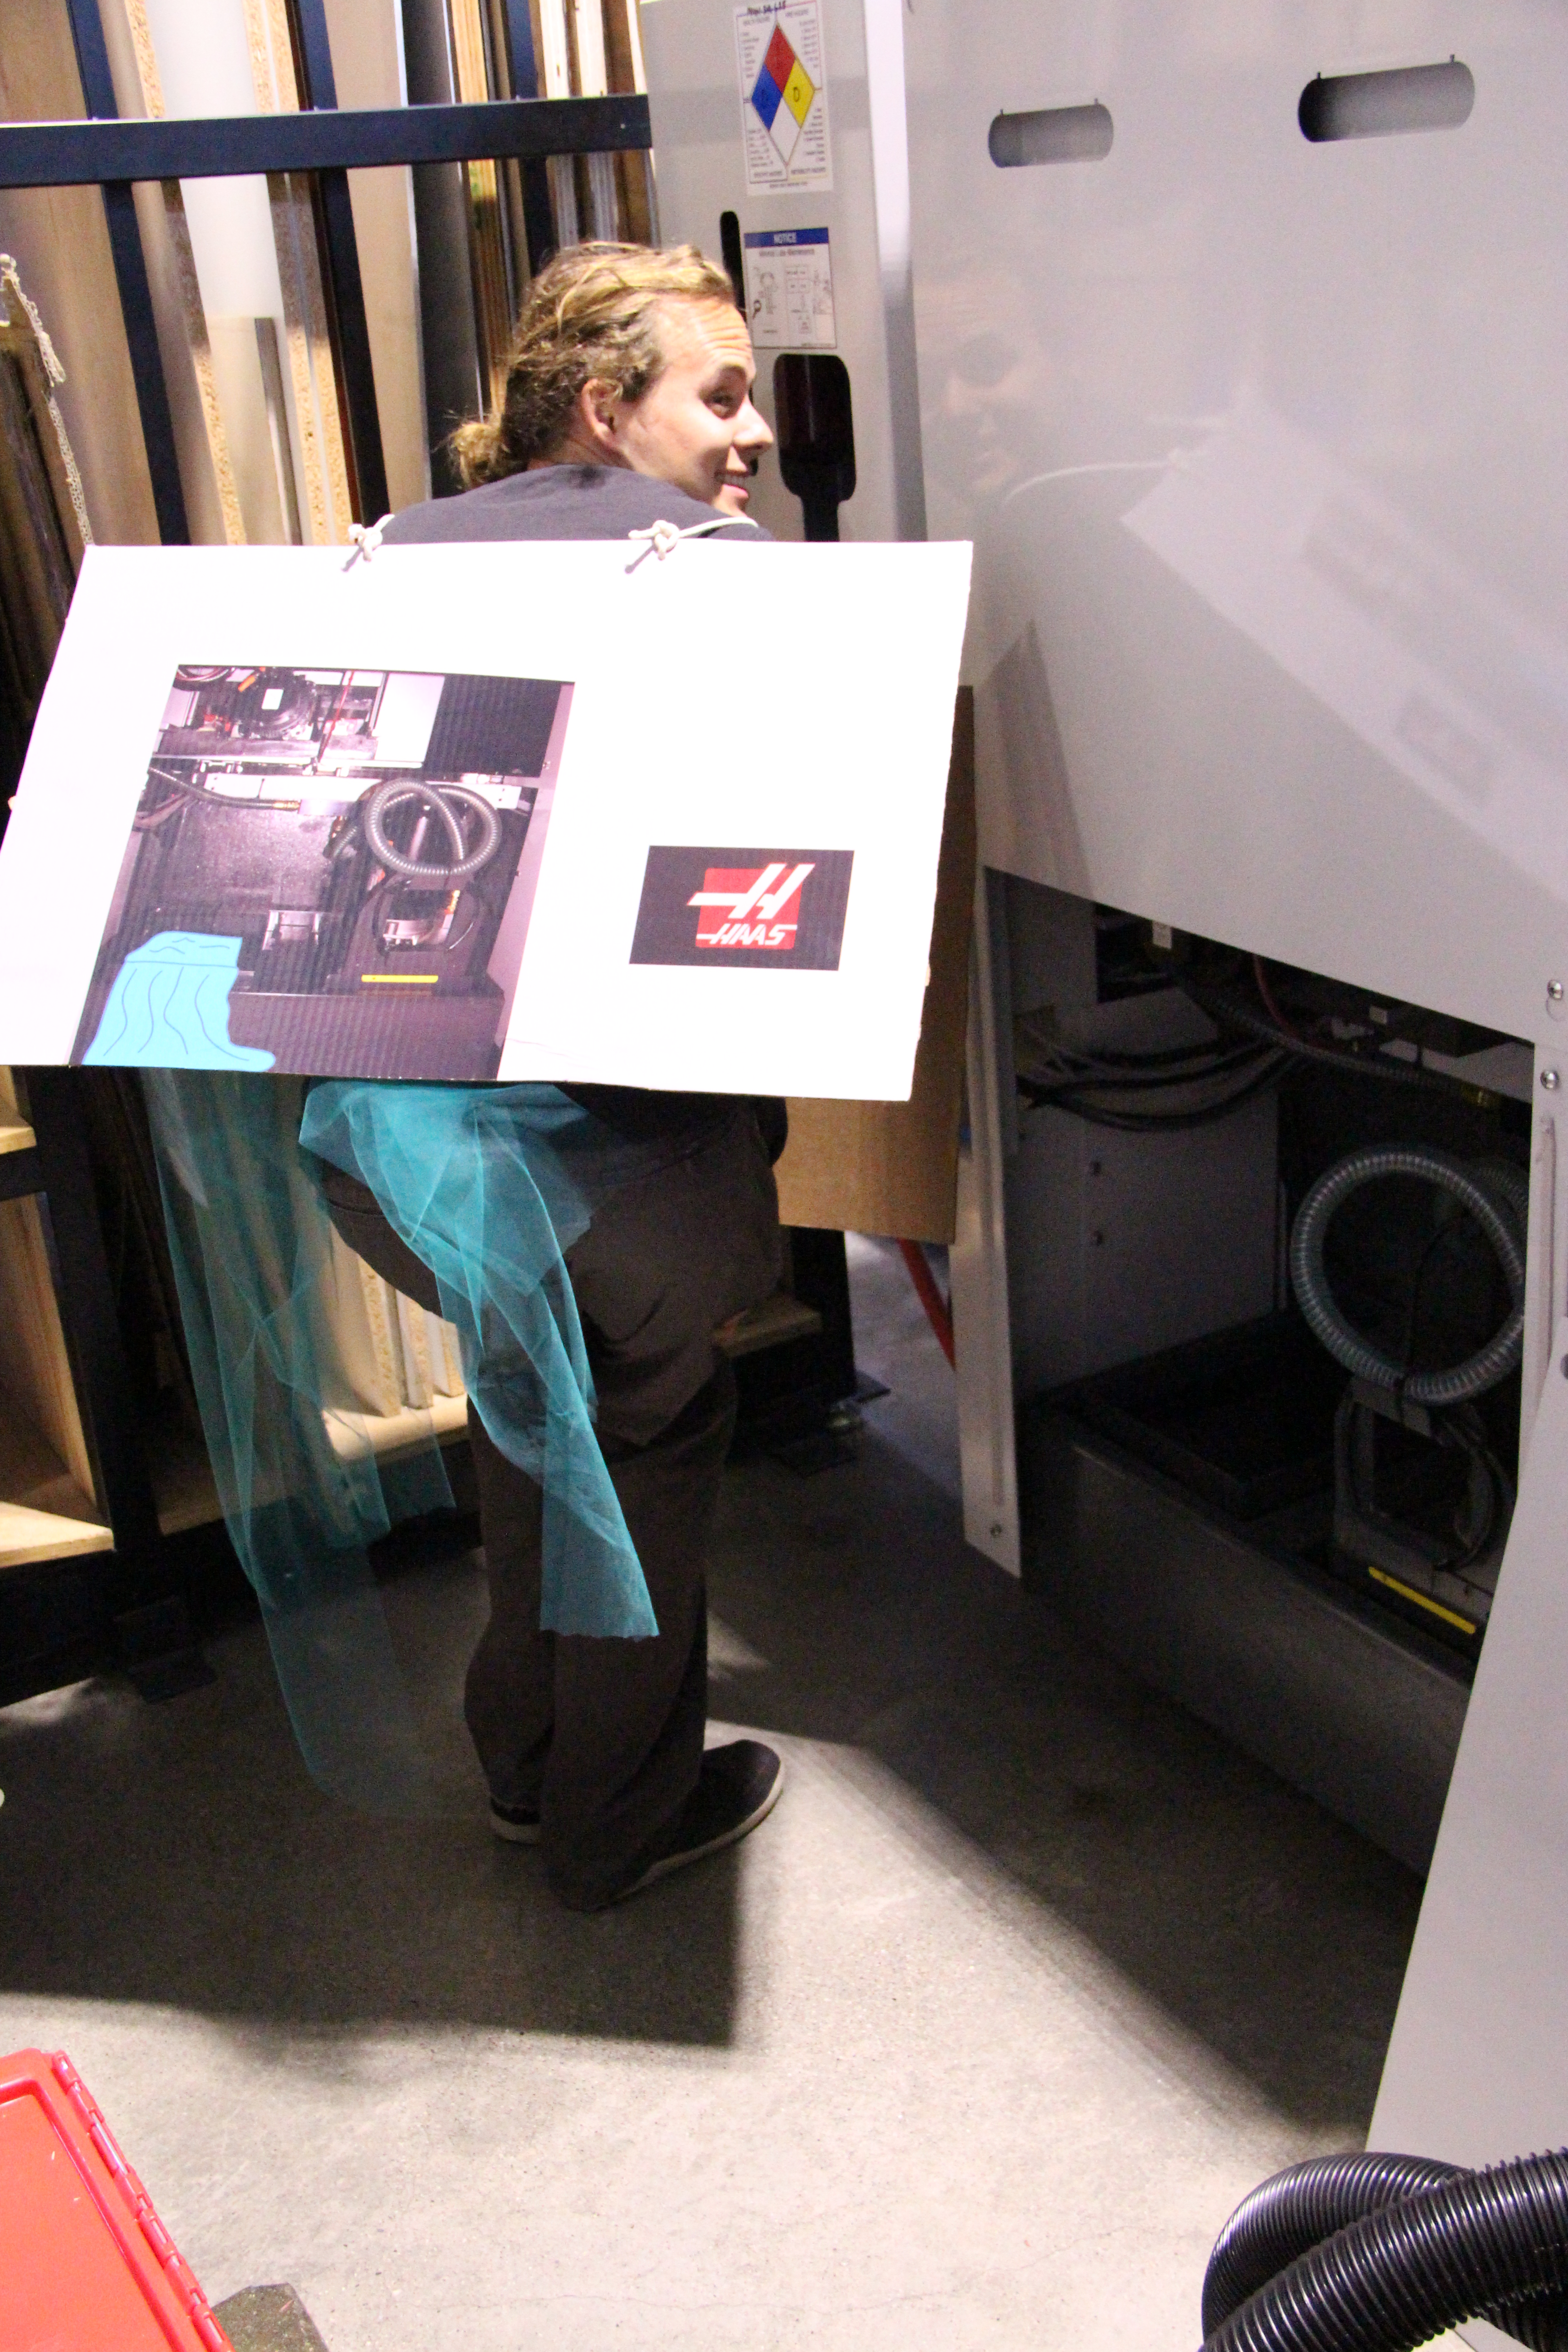 Picture of HASS CNC Lathe Costume, With Coolant Spill!